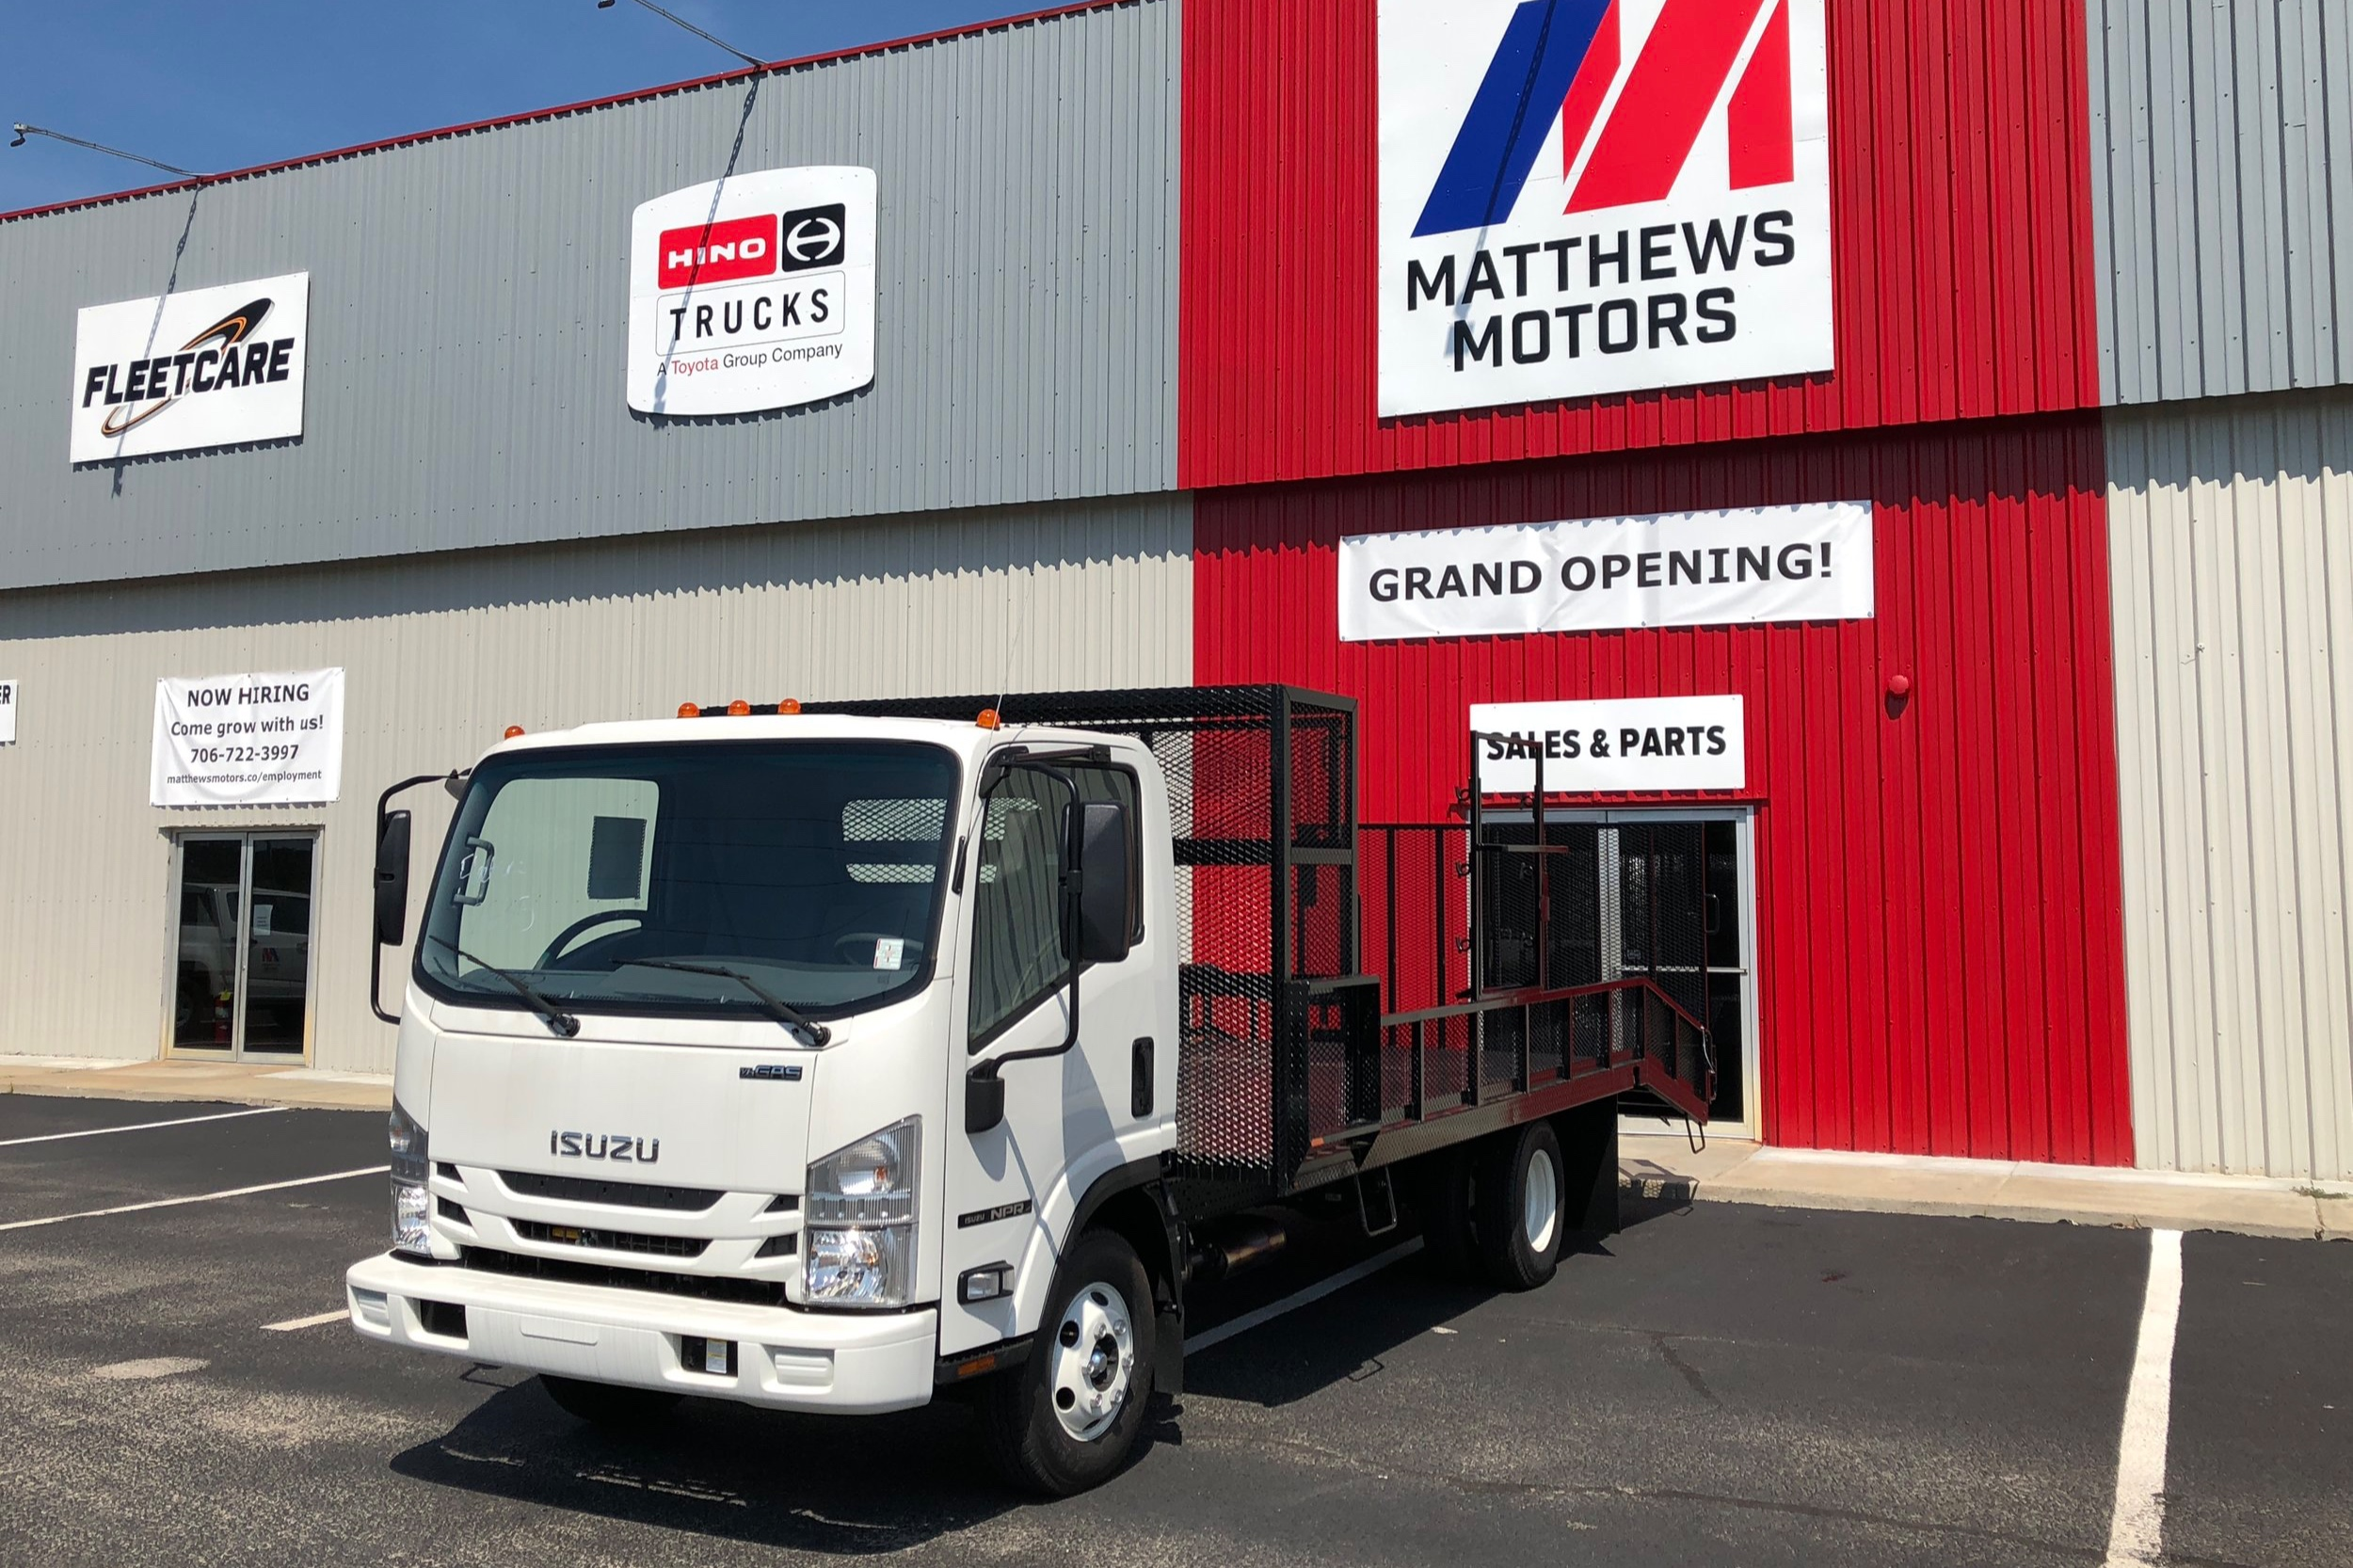 2019 Isuzu NPR Gas with Open Landscape Body - Stock No: N/A (Order Only)Class: Class 4 (GVW 14001 - 16000)Cab Type: STANDARD CABEngine Make: IsuzuEngine Size: 6LFuel Type: GasolineVIN: N/A (Order Only)